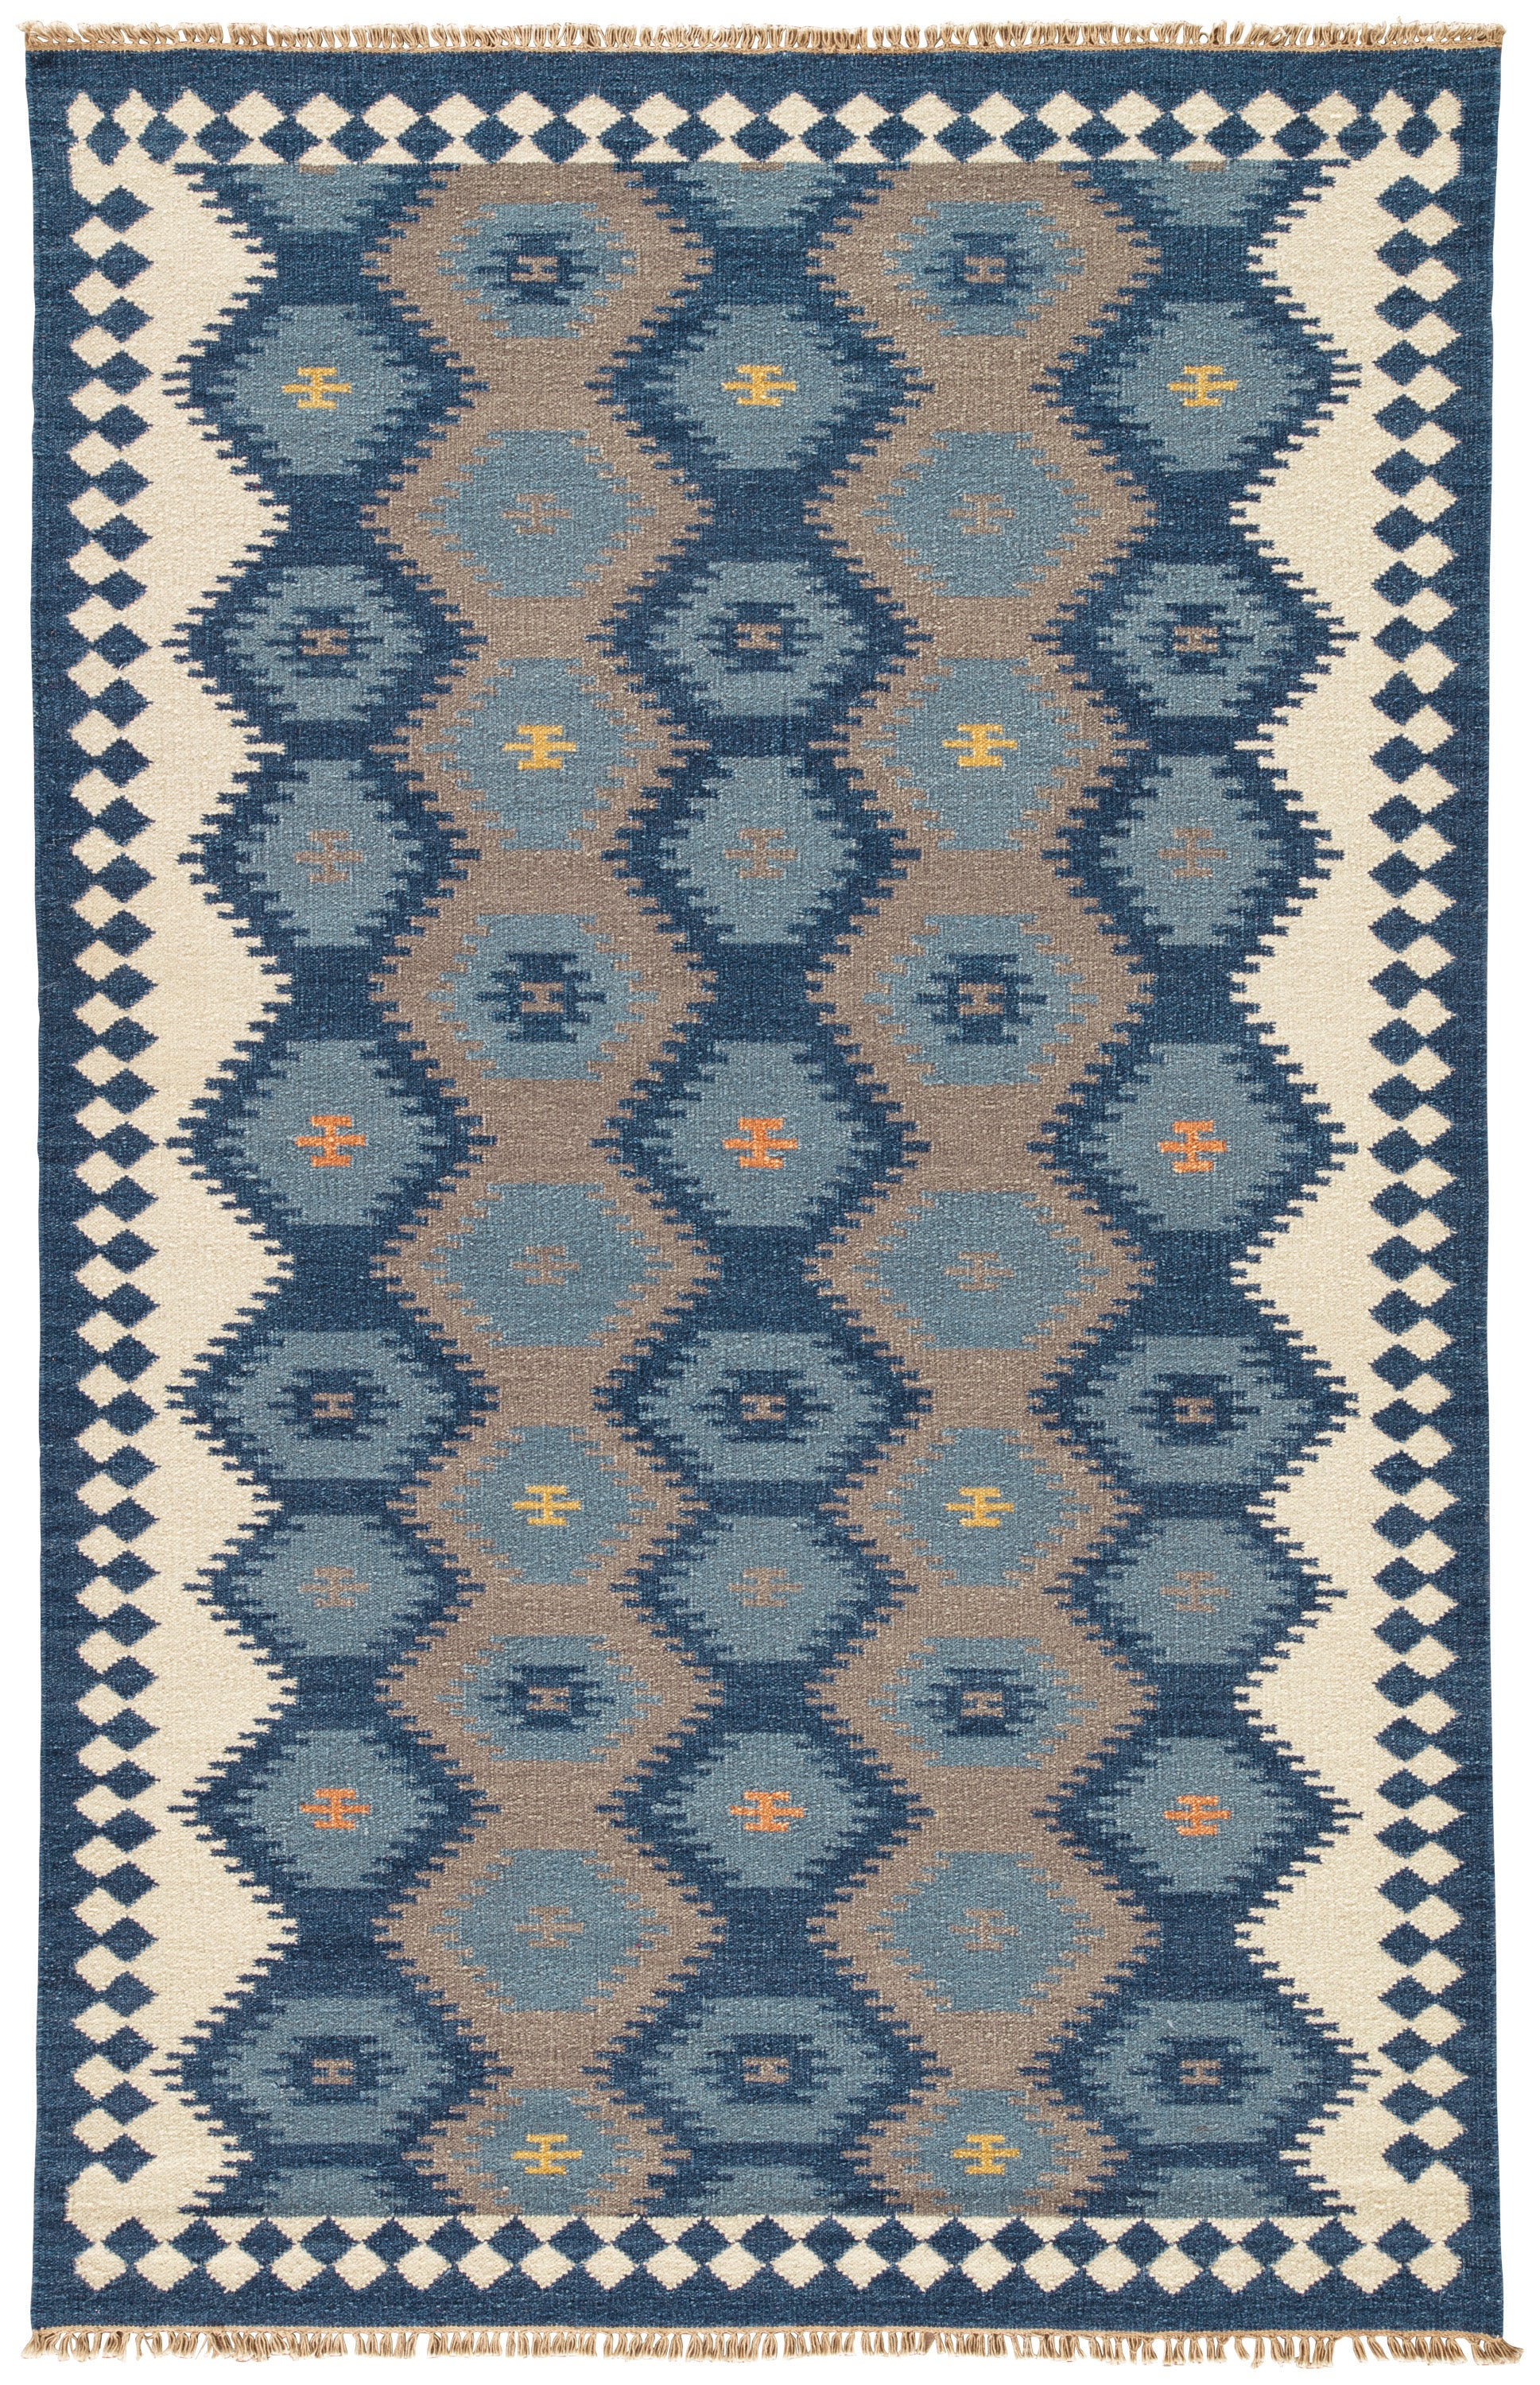 Rectangle Darkblue Geometric Dhurrie Wool Southwestern recommended for Bedroom, Bathroom, Dining Room, Office, Hallway, Living Room